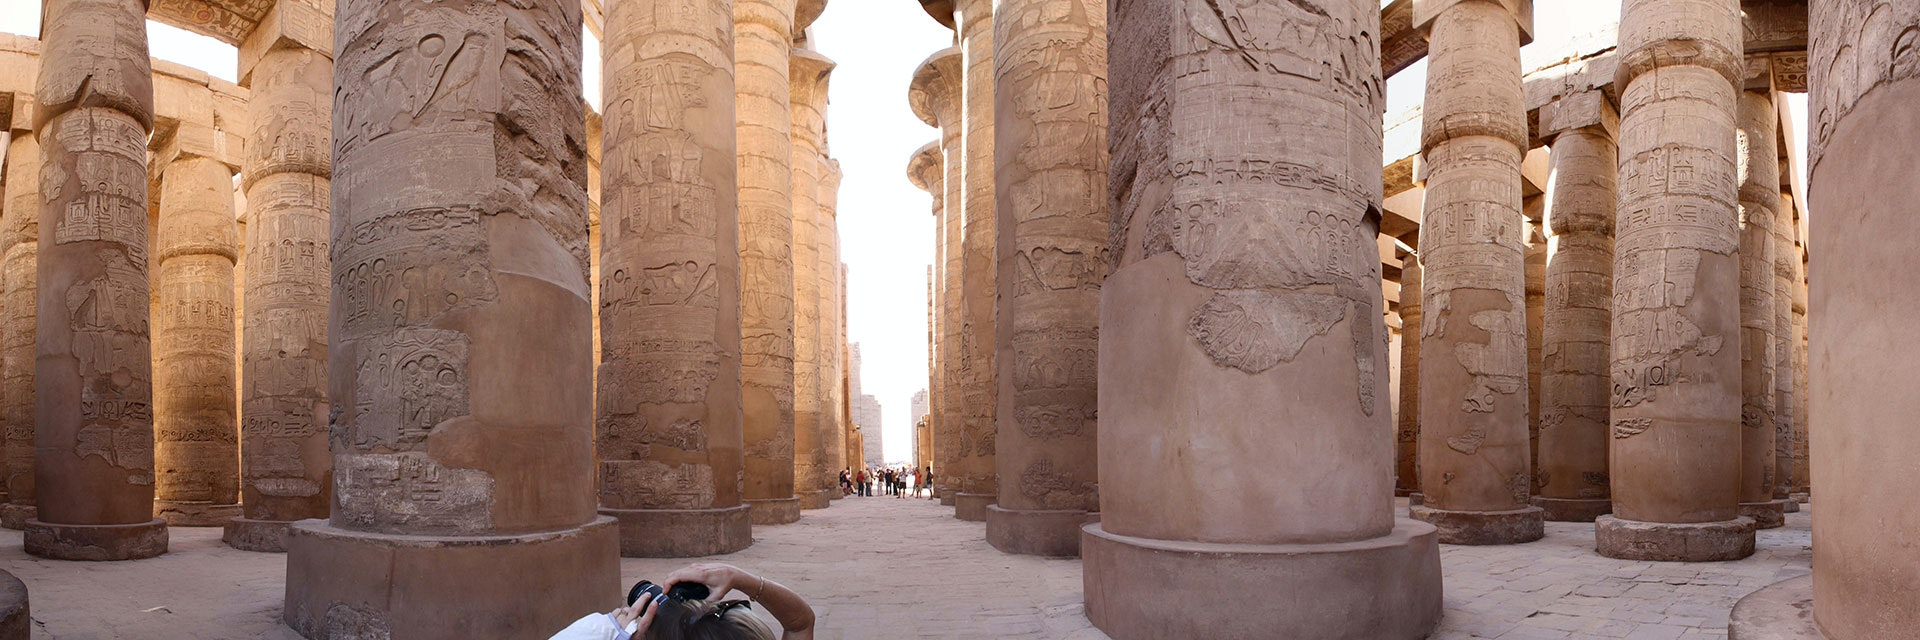 A panorama of the great hypostyle hall at Karnak